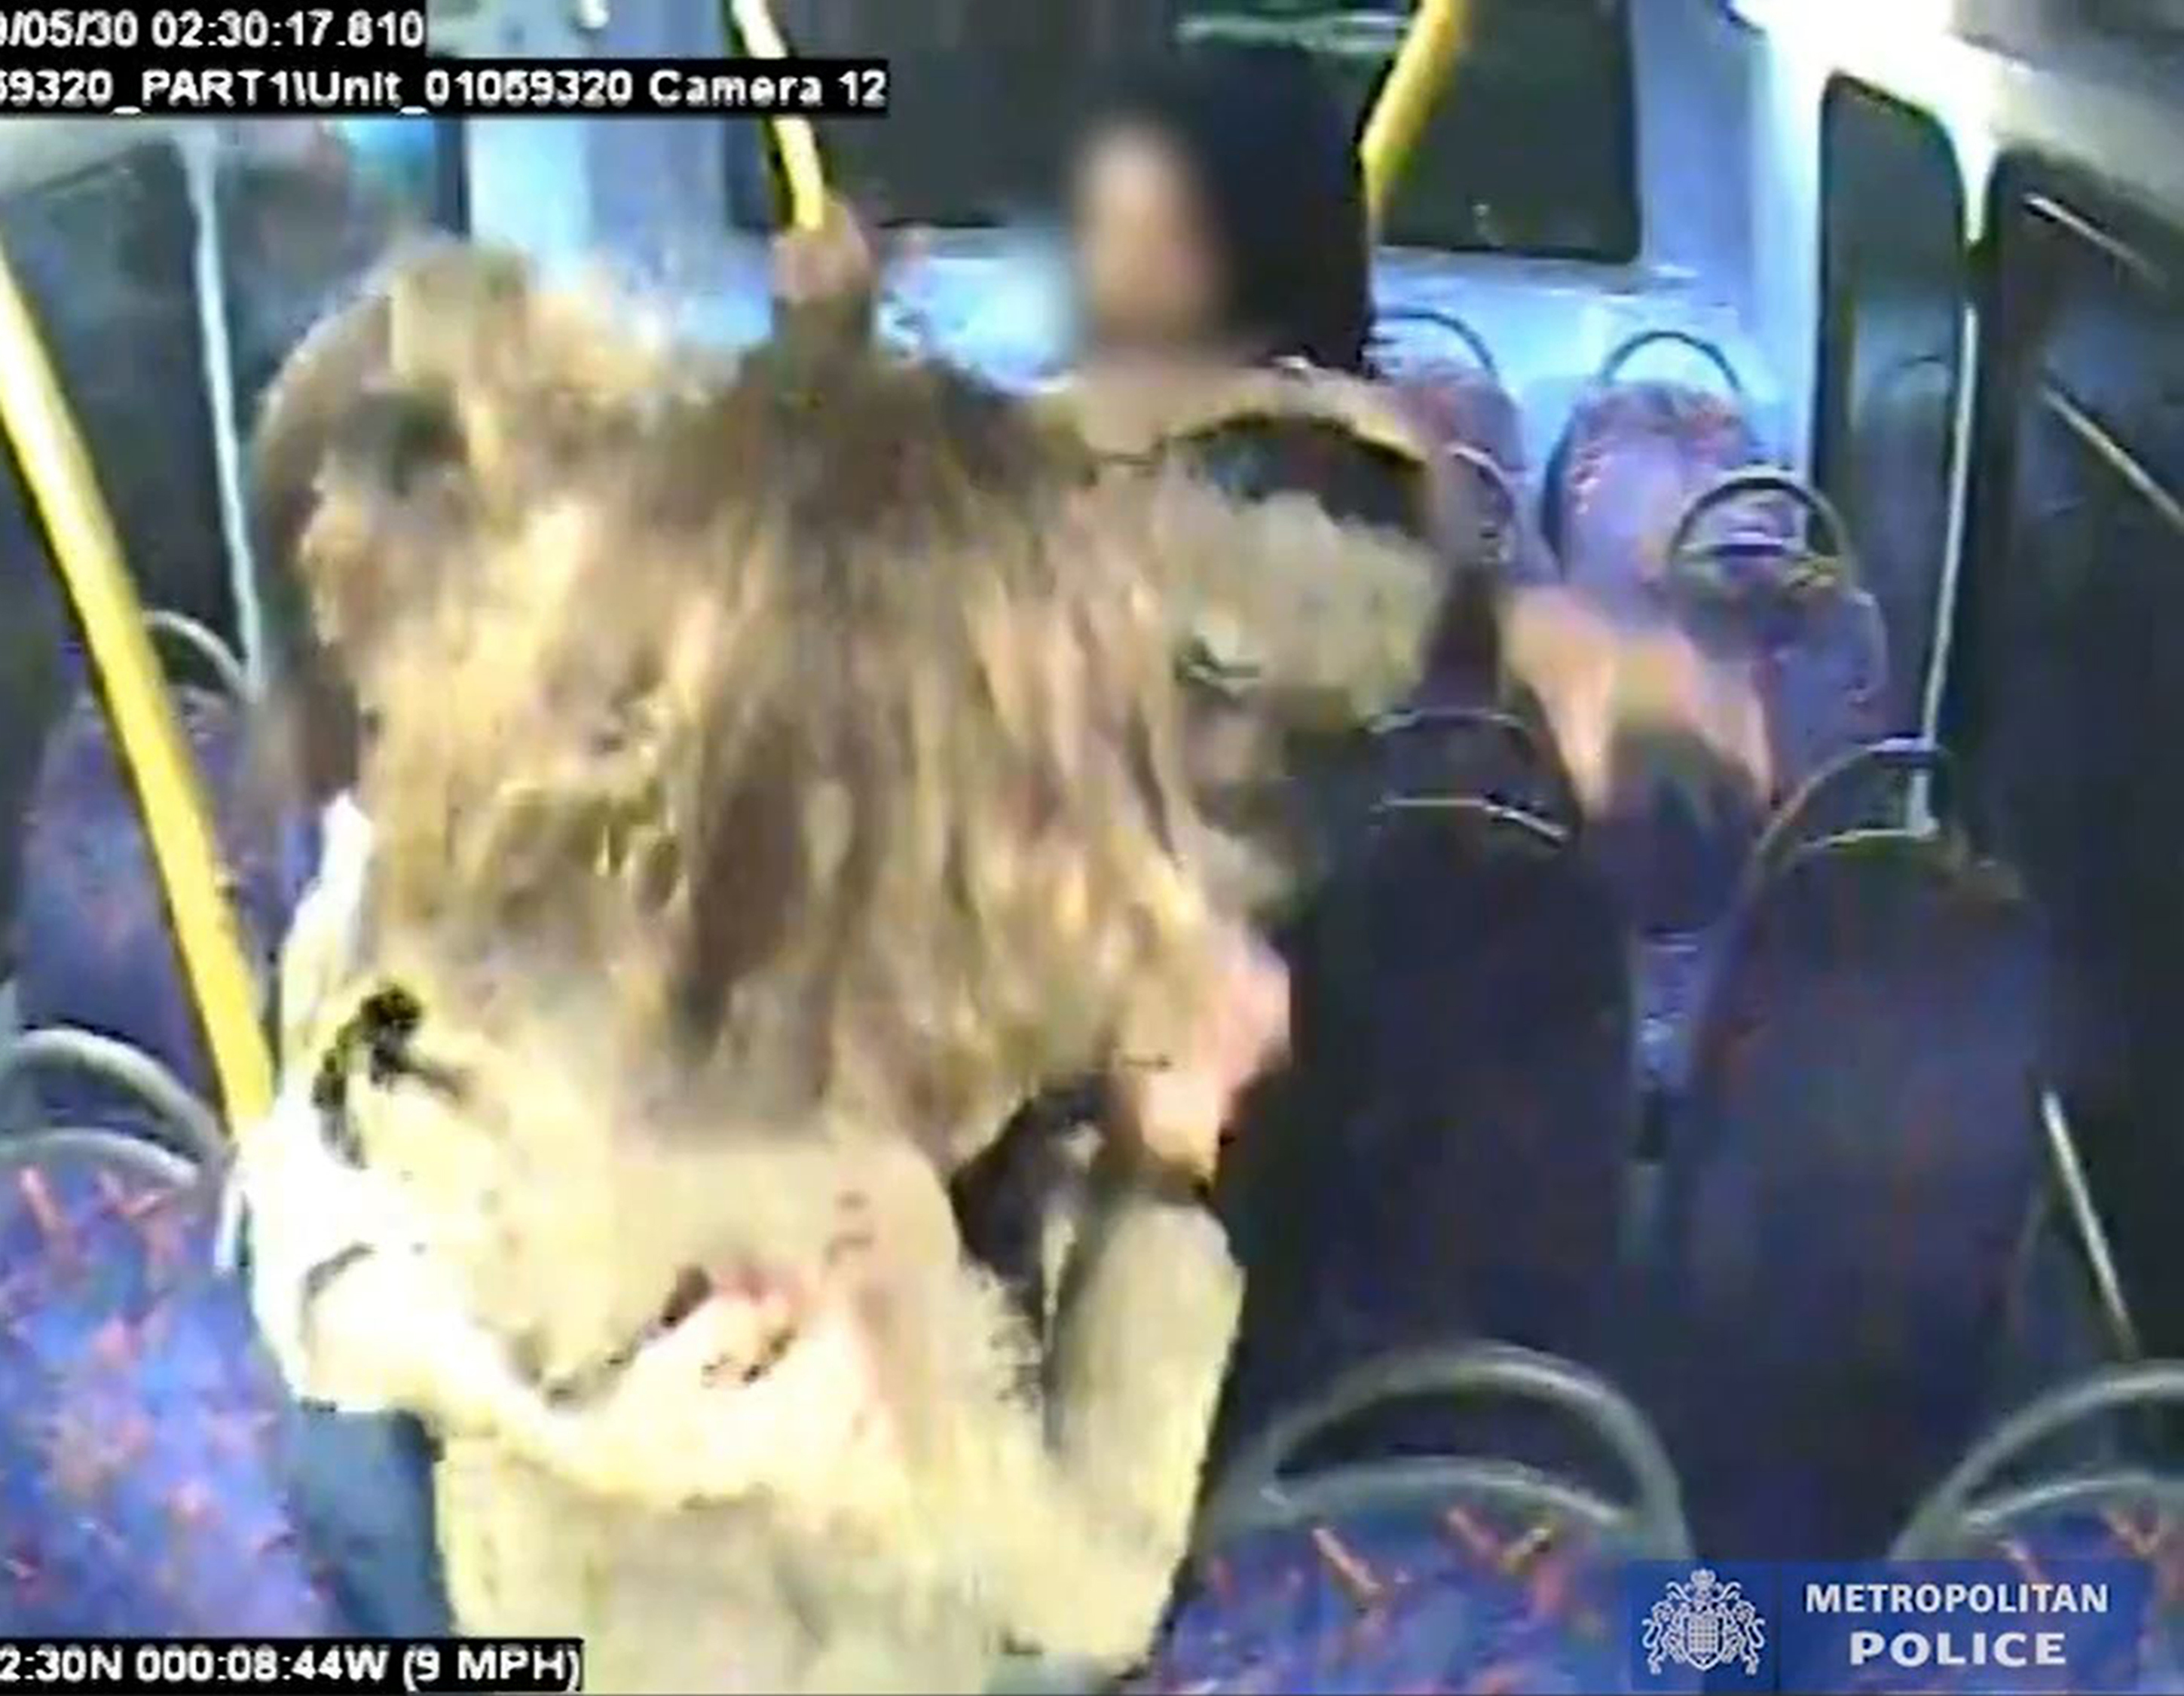 16-Year-Old Boy Won't Go To Jail For Attacking Couple On Bus